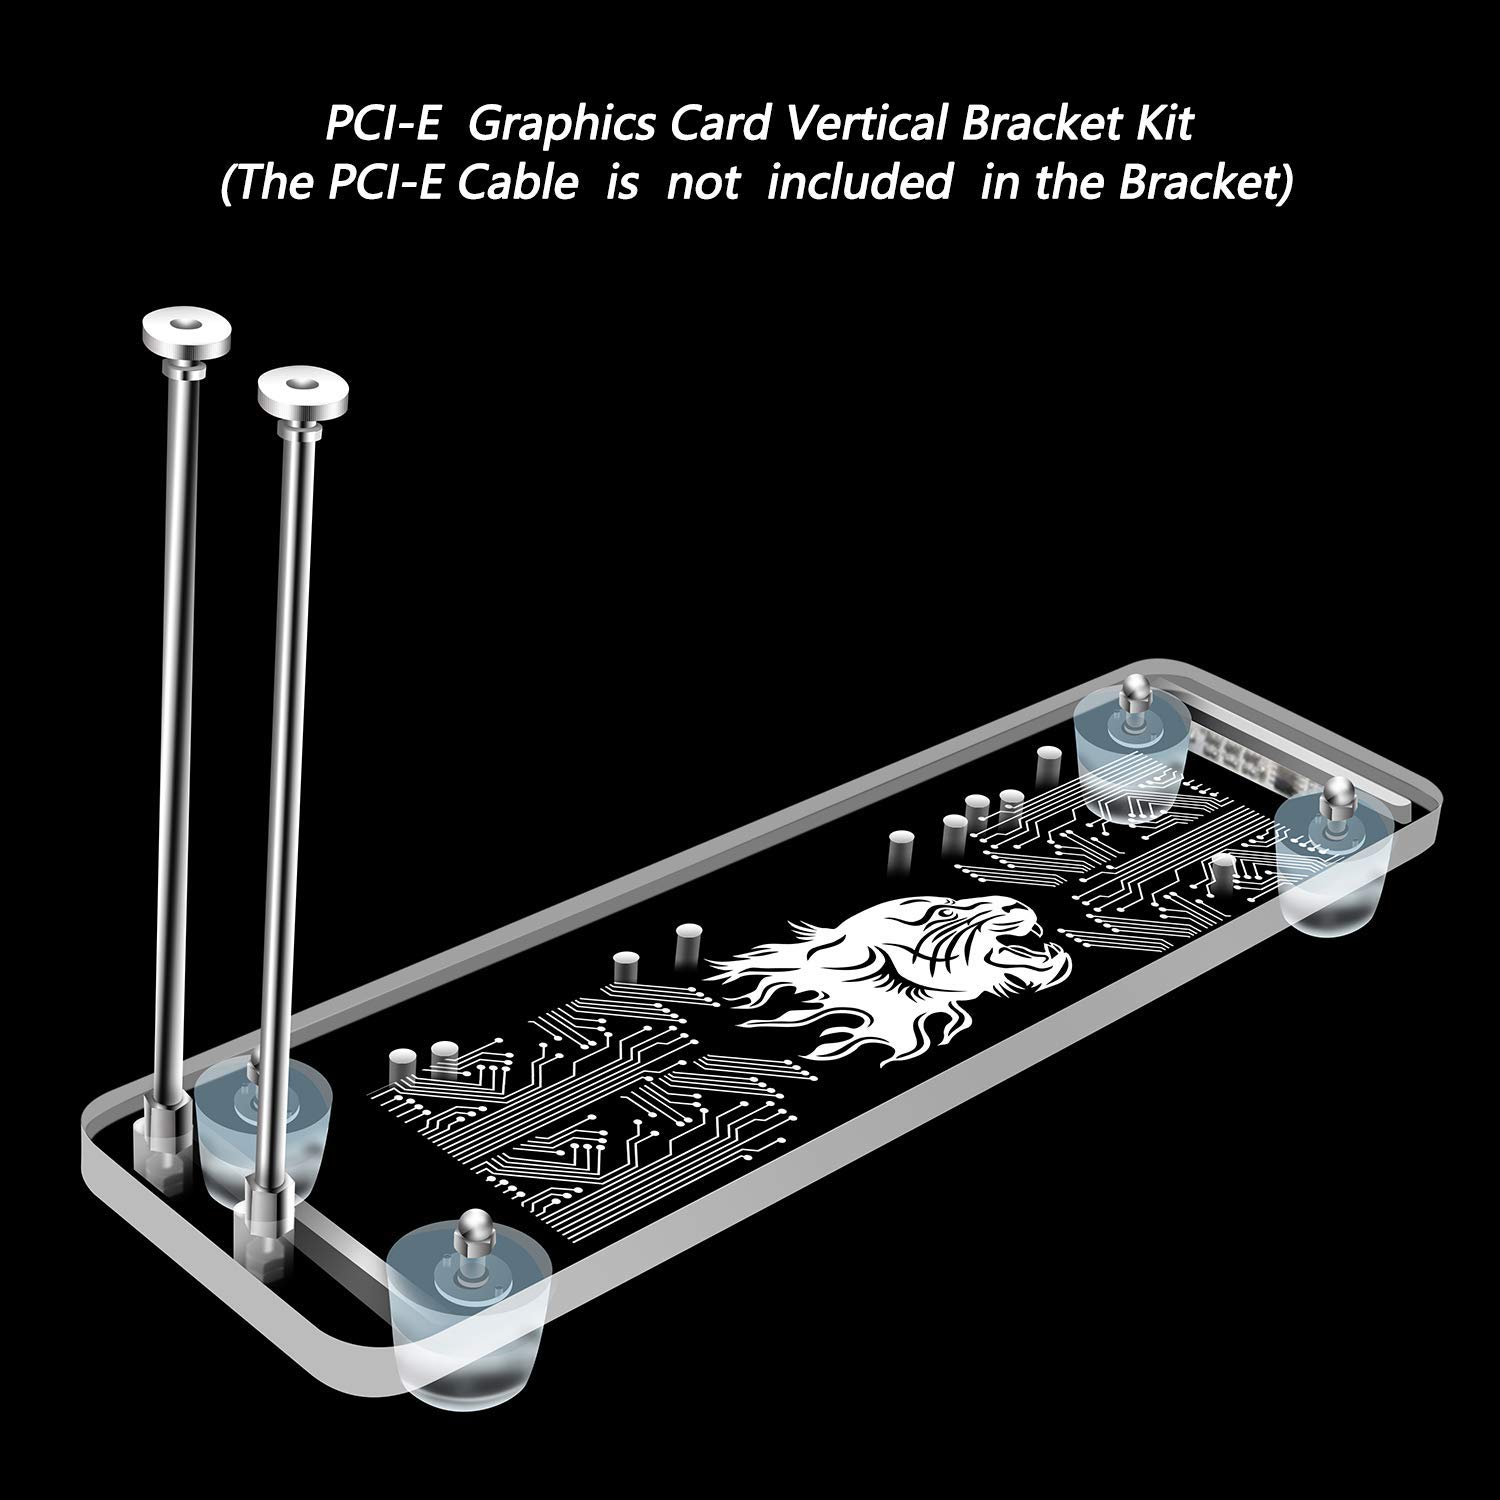 PCI- E 3.0 16X Graphics Card Vertical Kickstand/Base with RGB LED Light for DIY ATX case(DIY ATX case) by Timack